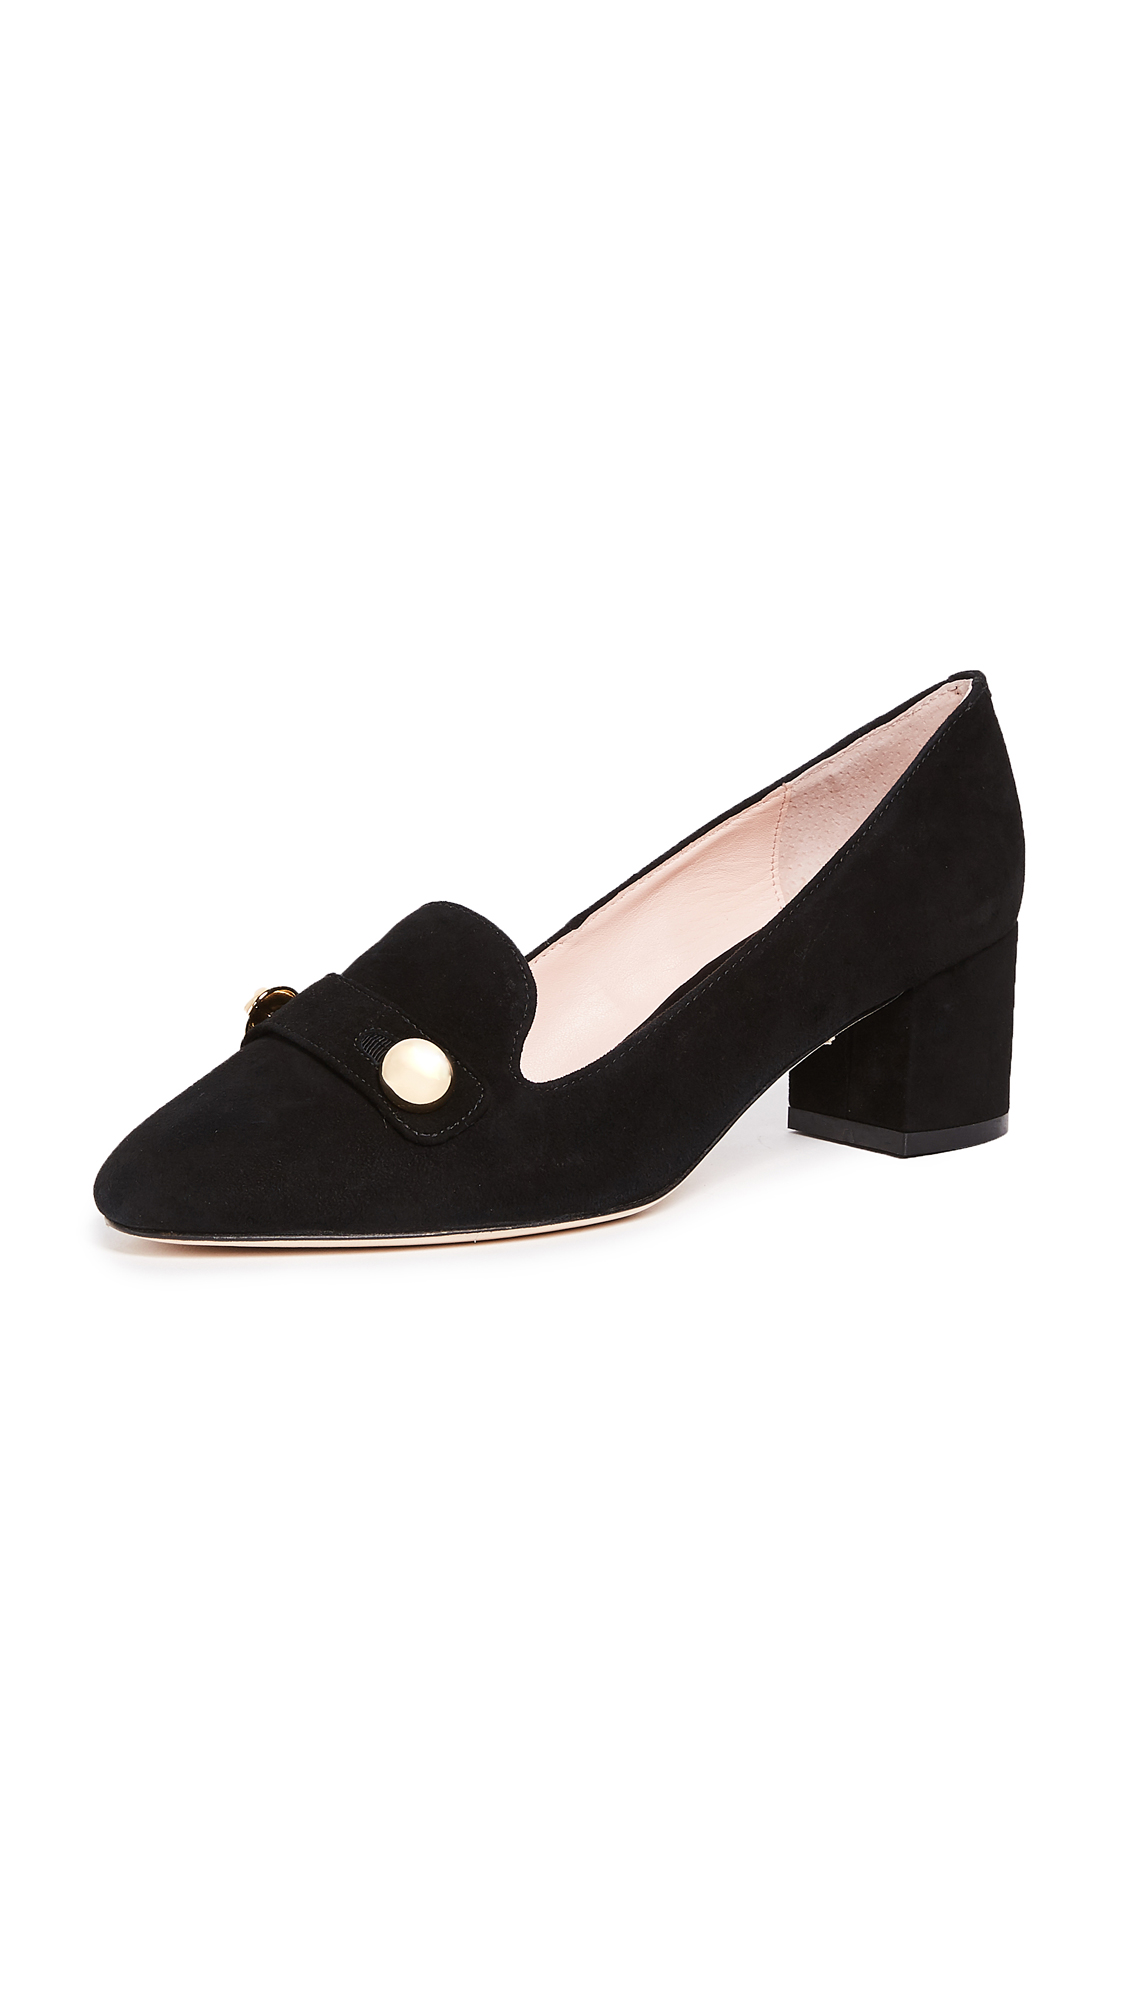 Kate Spade New York Middleton Pointed Toe Pumps - Black